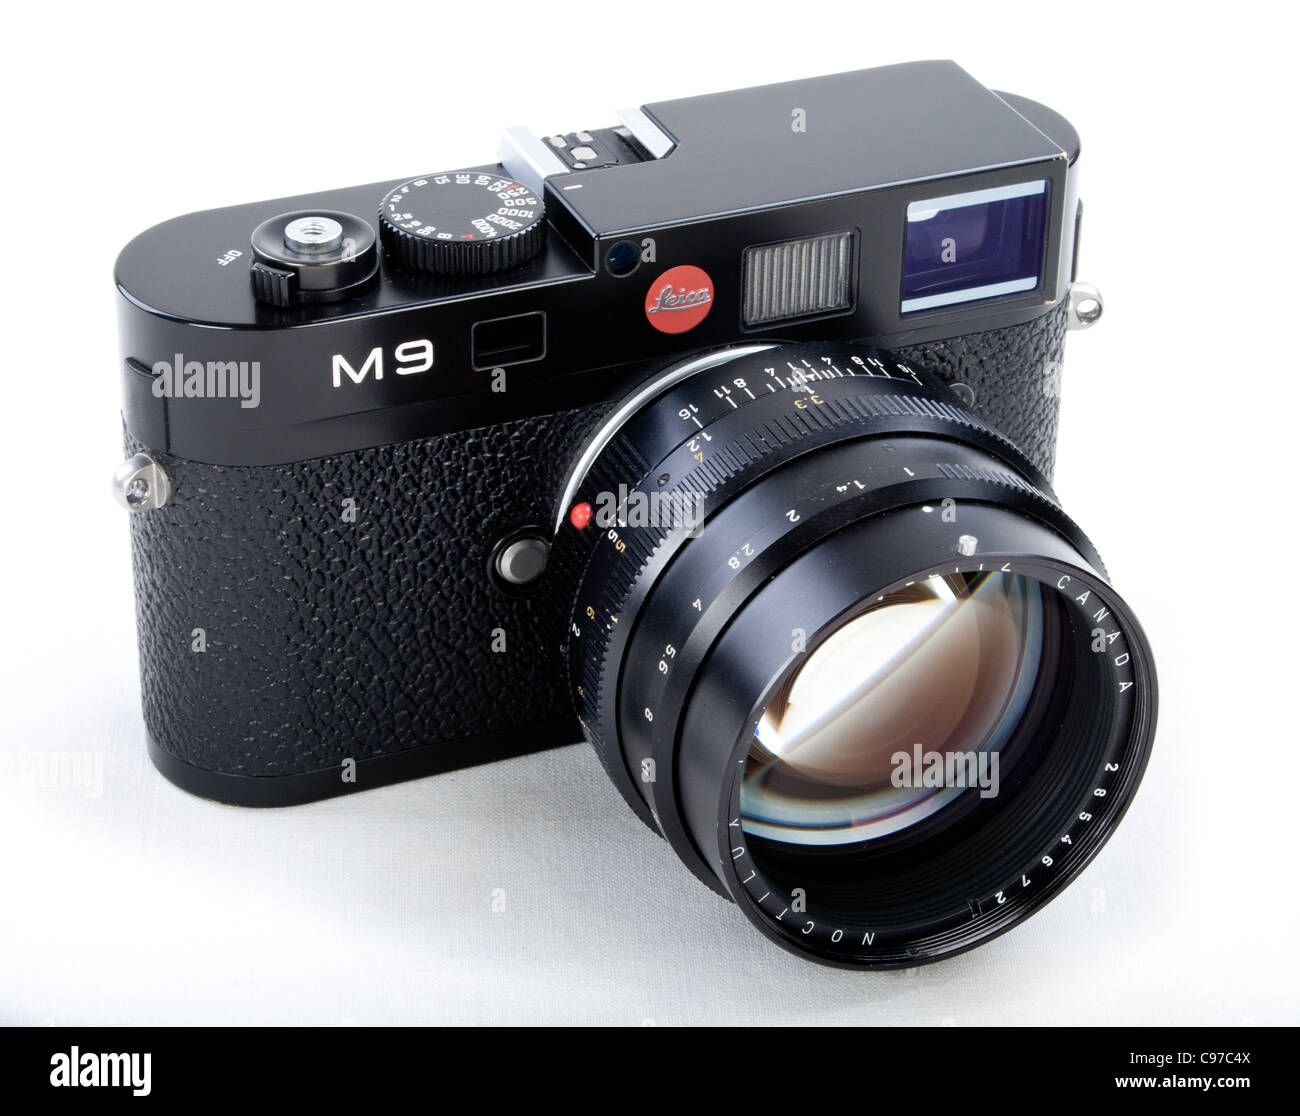 LEICA M9 Digital Rangefinder Camera Body with Noctilux f1 50mm Fast